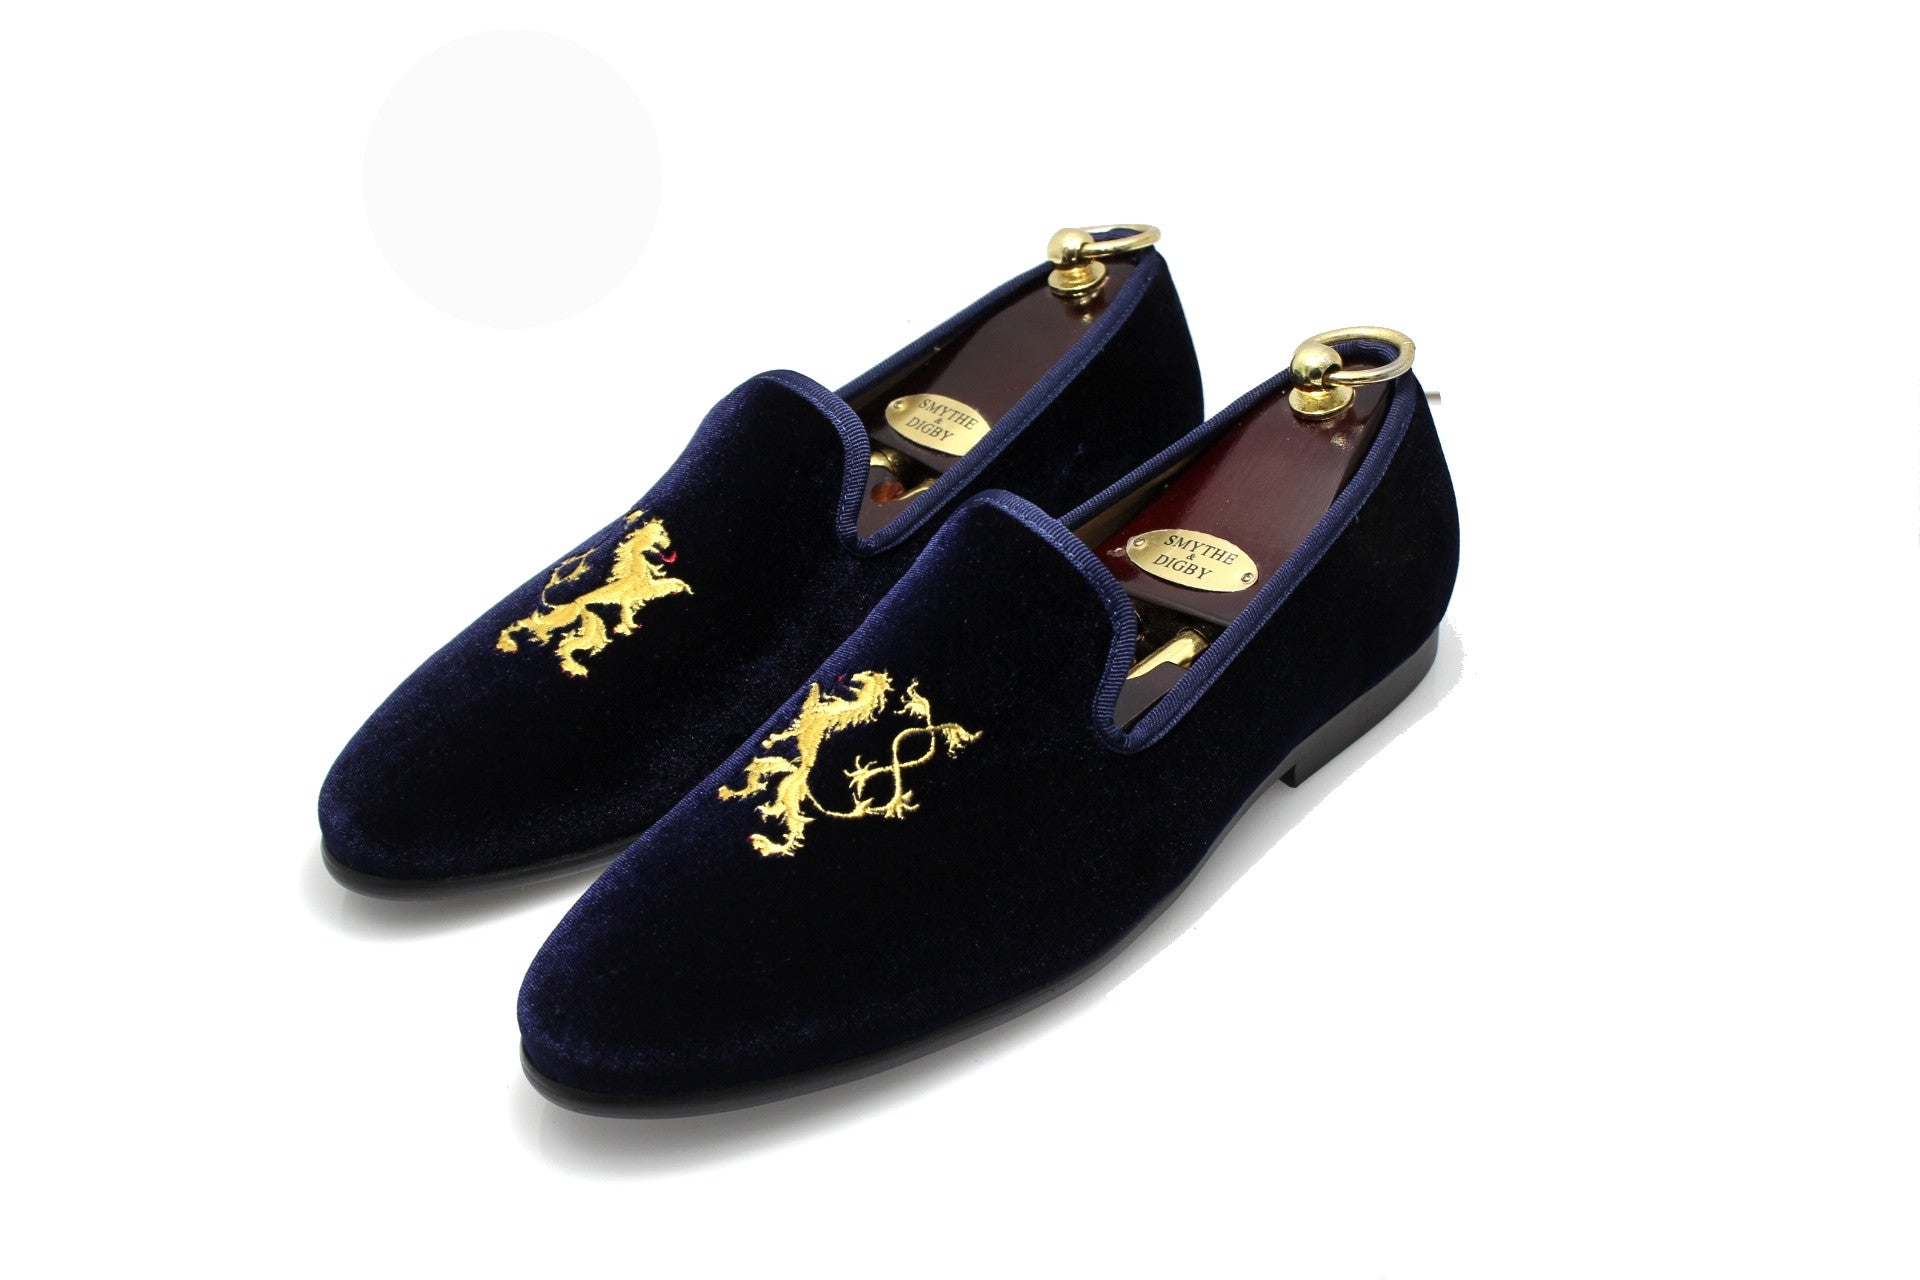 d584ef5afff4f Navy Blue Men's Albert Slipper Leather Velvet Loafer Rampant Motif ...